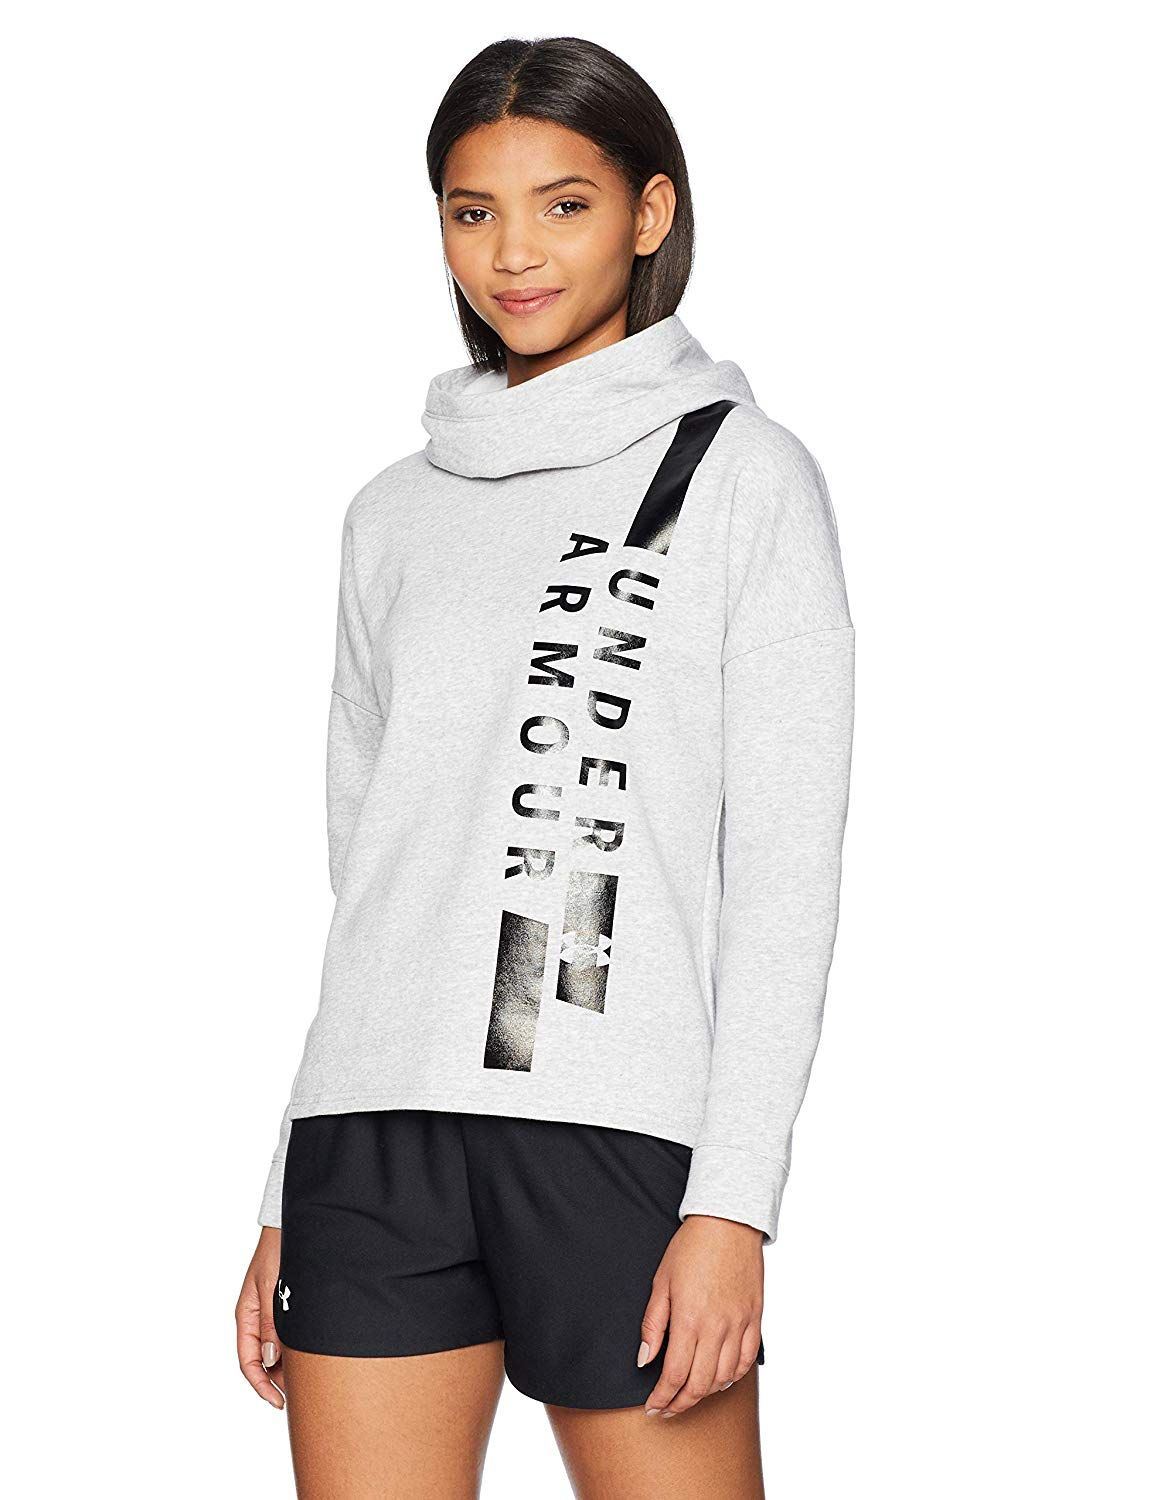 Under Armor Hoodie and Polar Lining for Women: Amazon.co